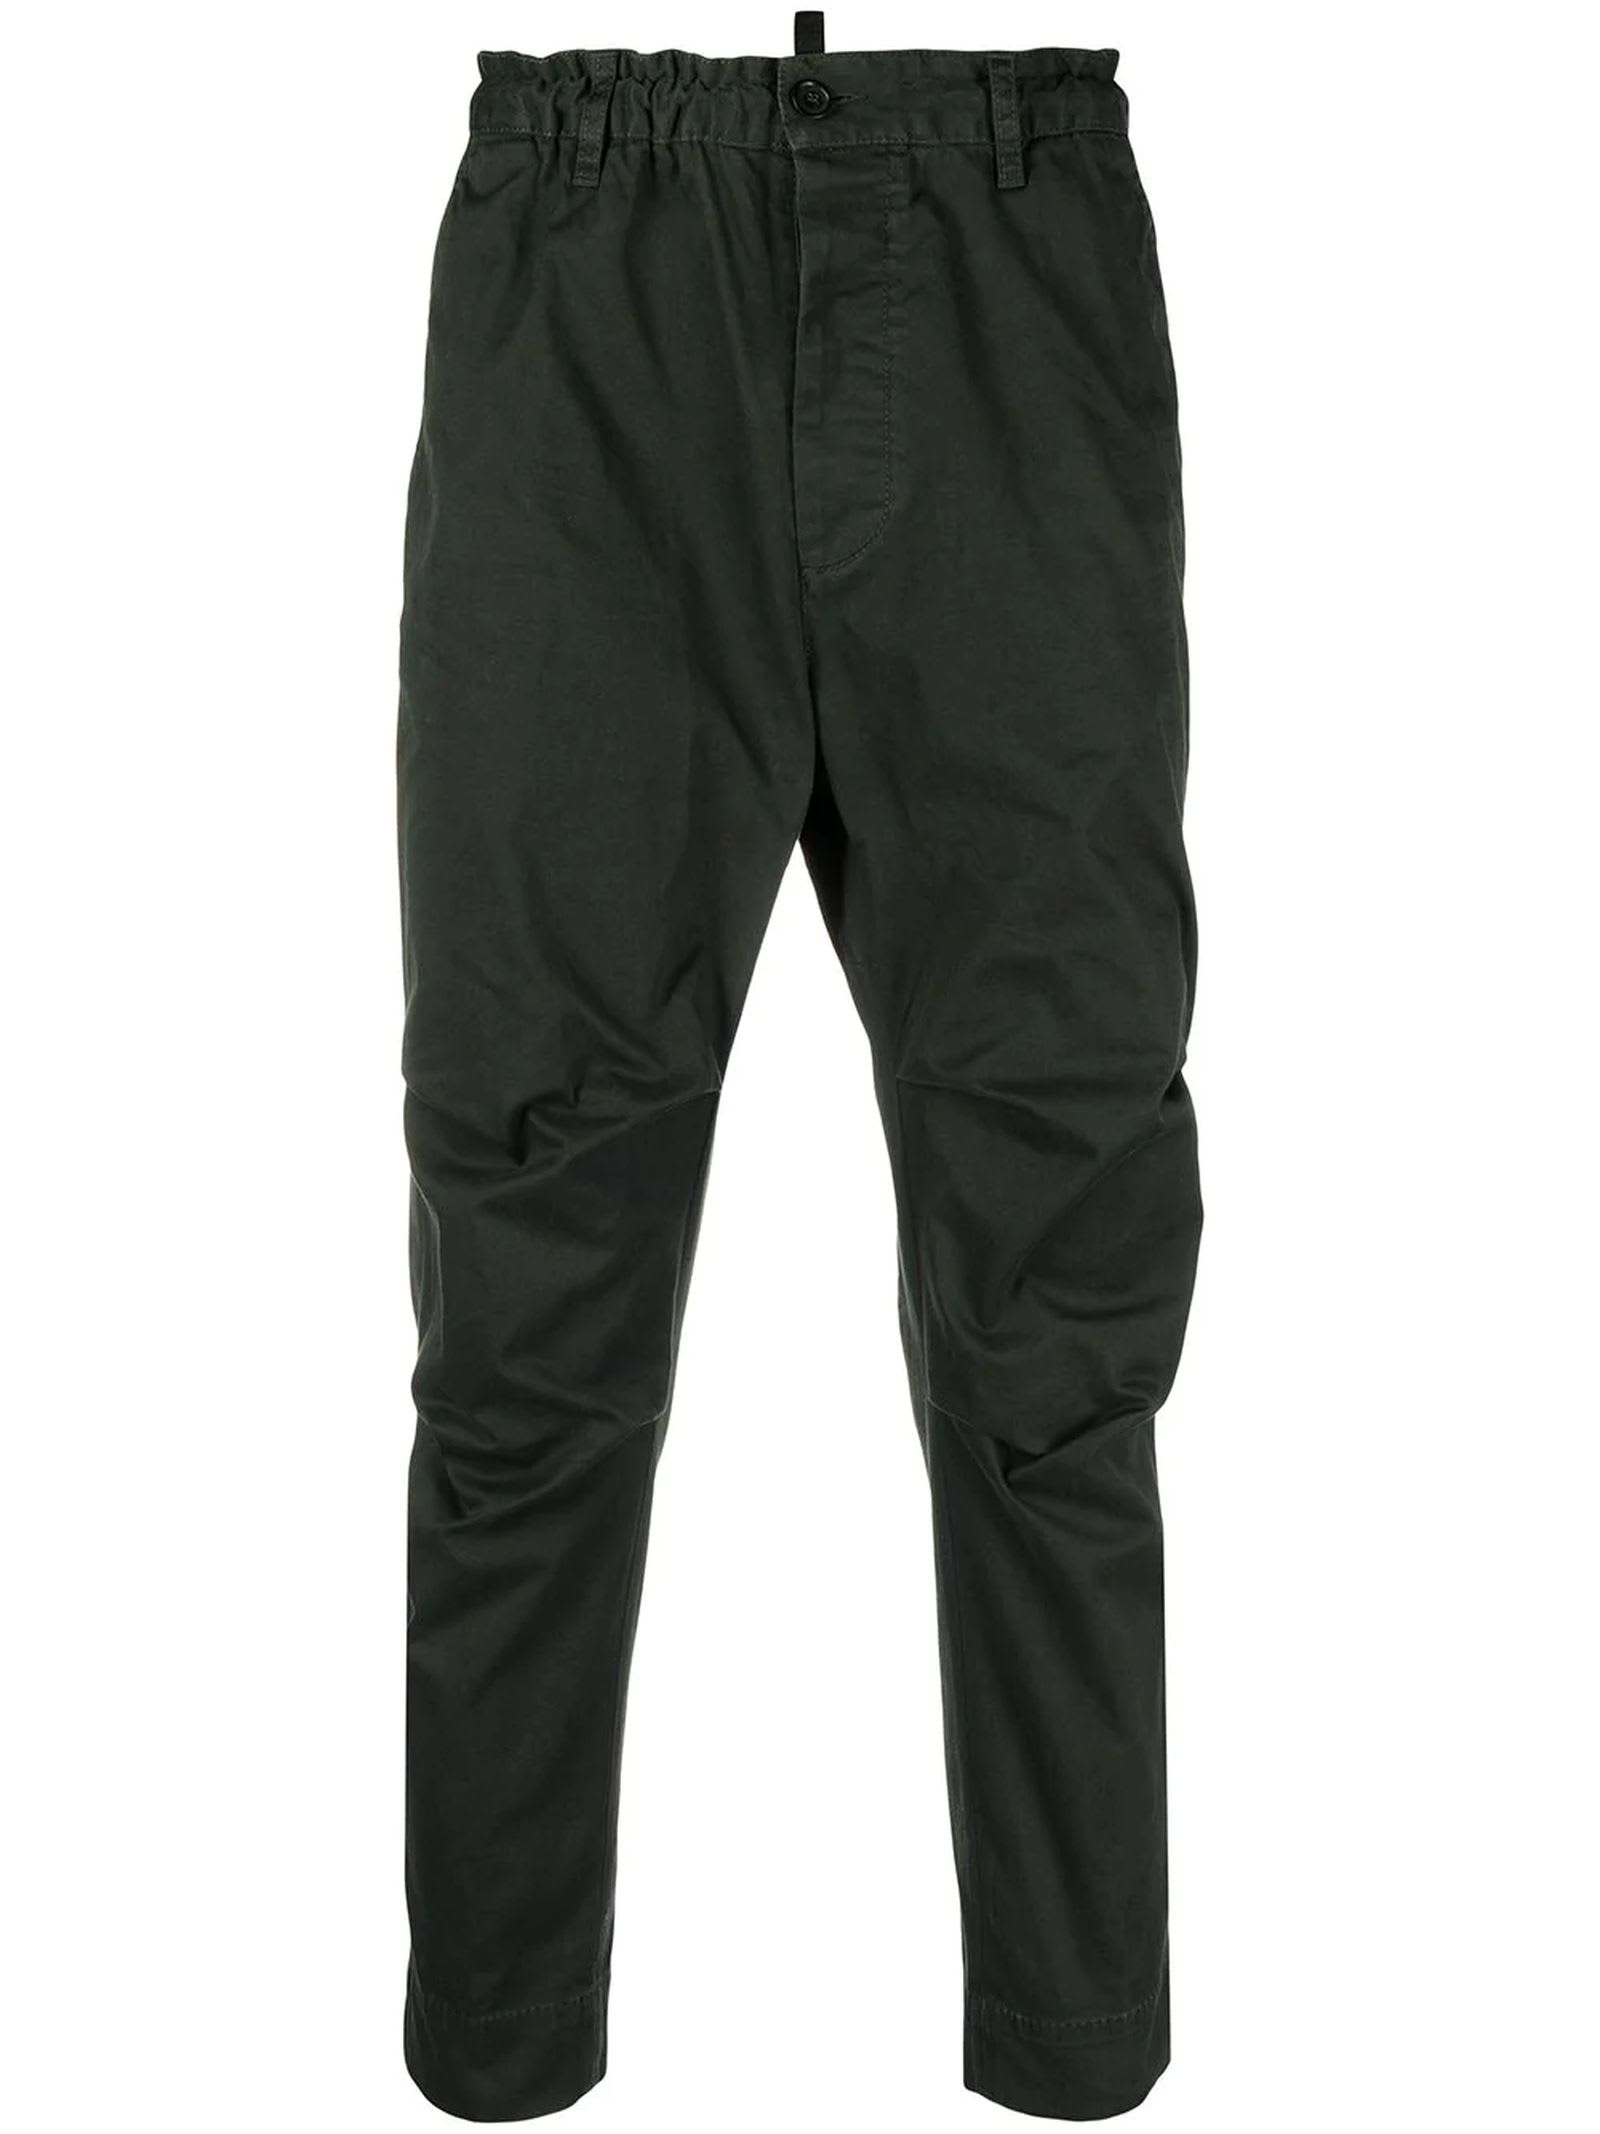 Dsquared2 DARK GREEN COTTON CHINOS